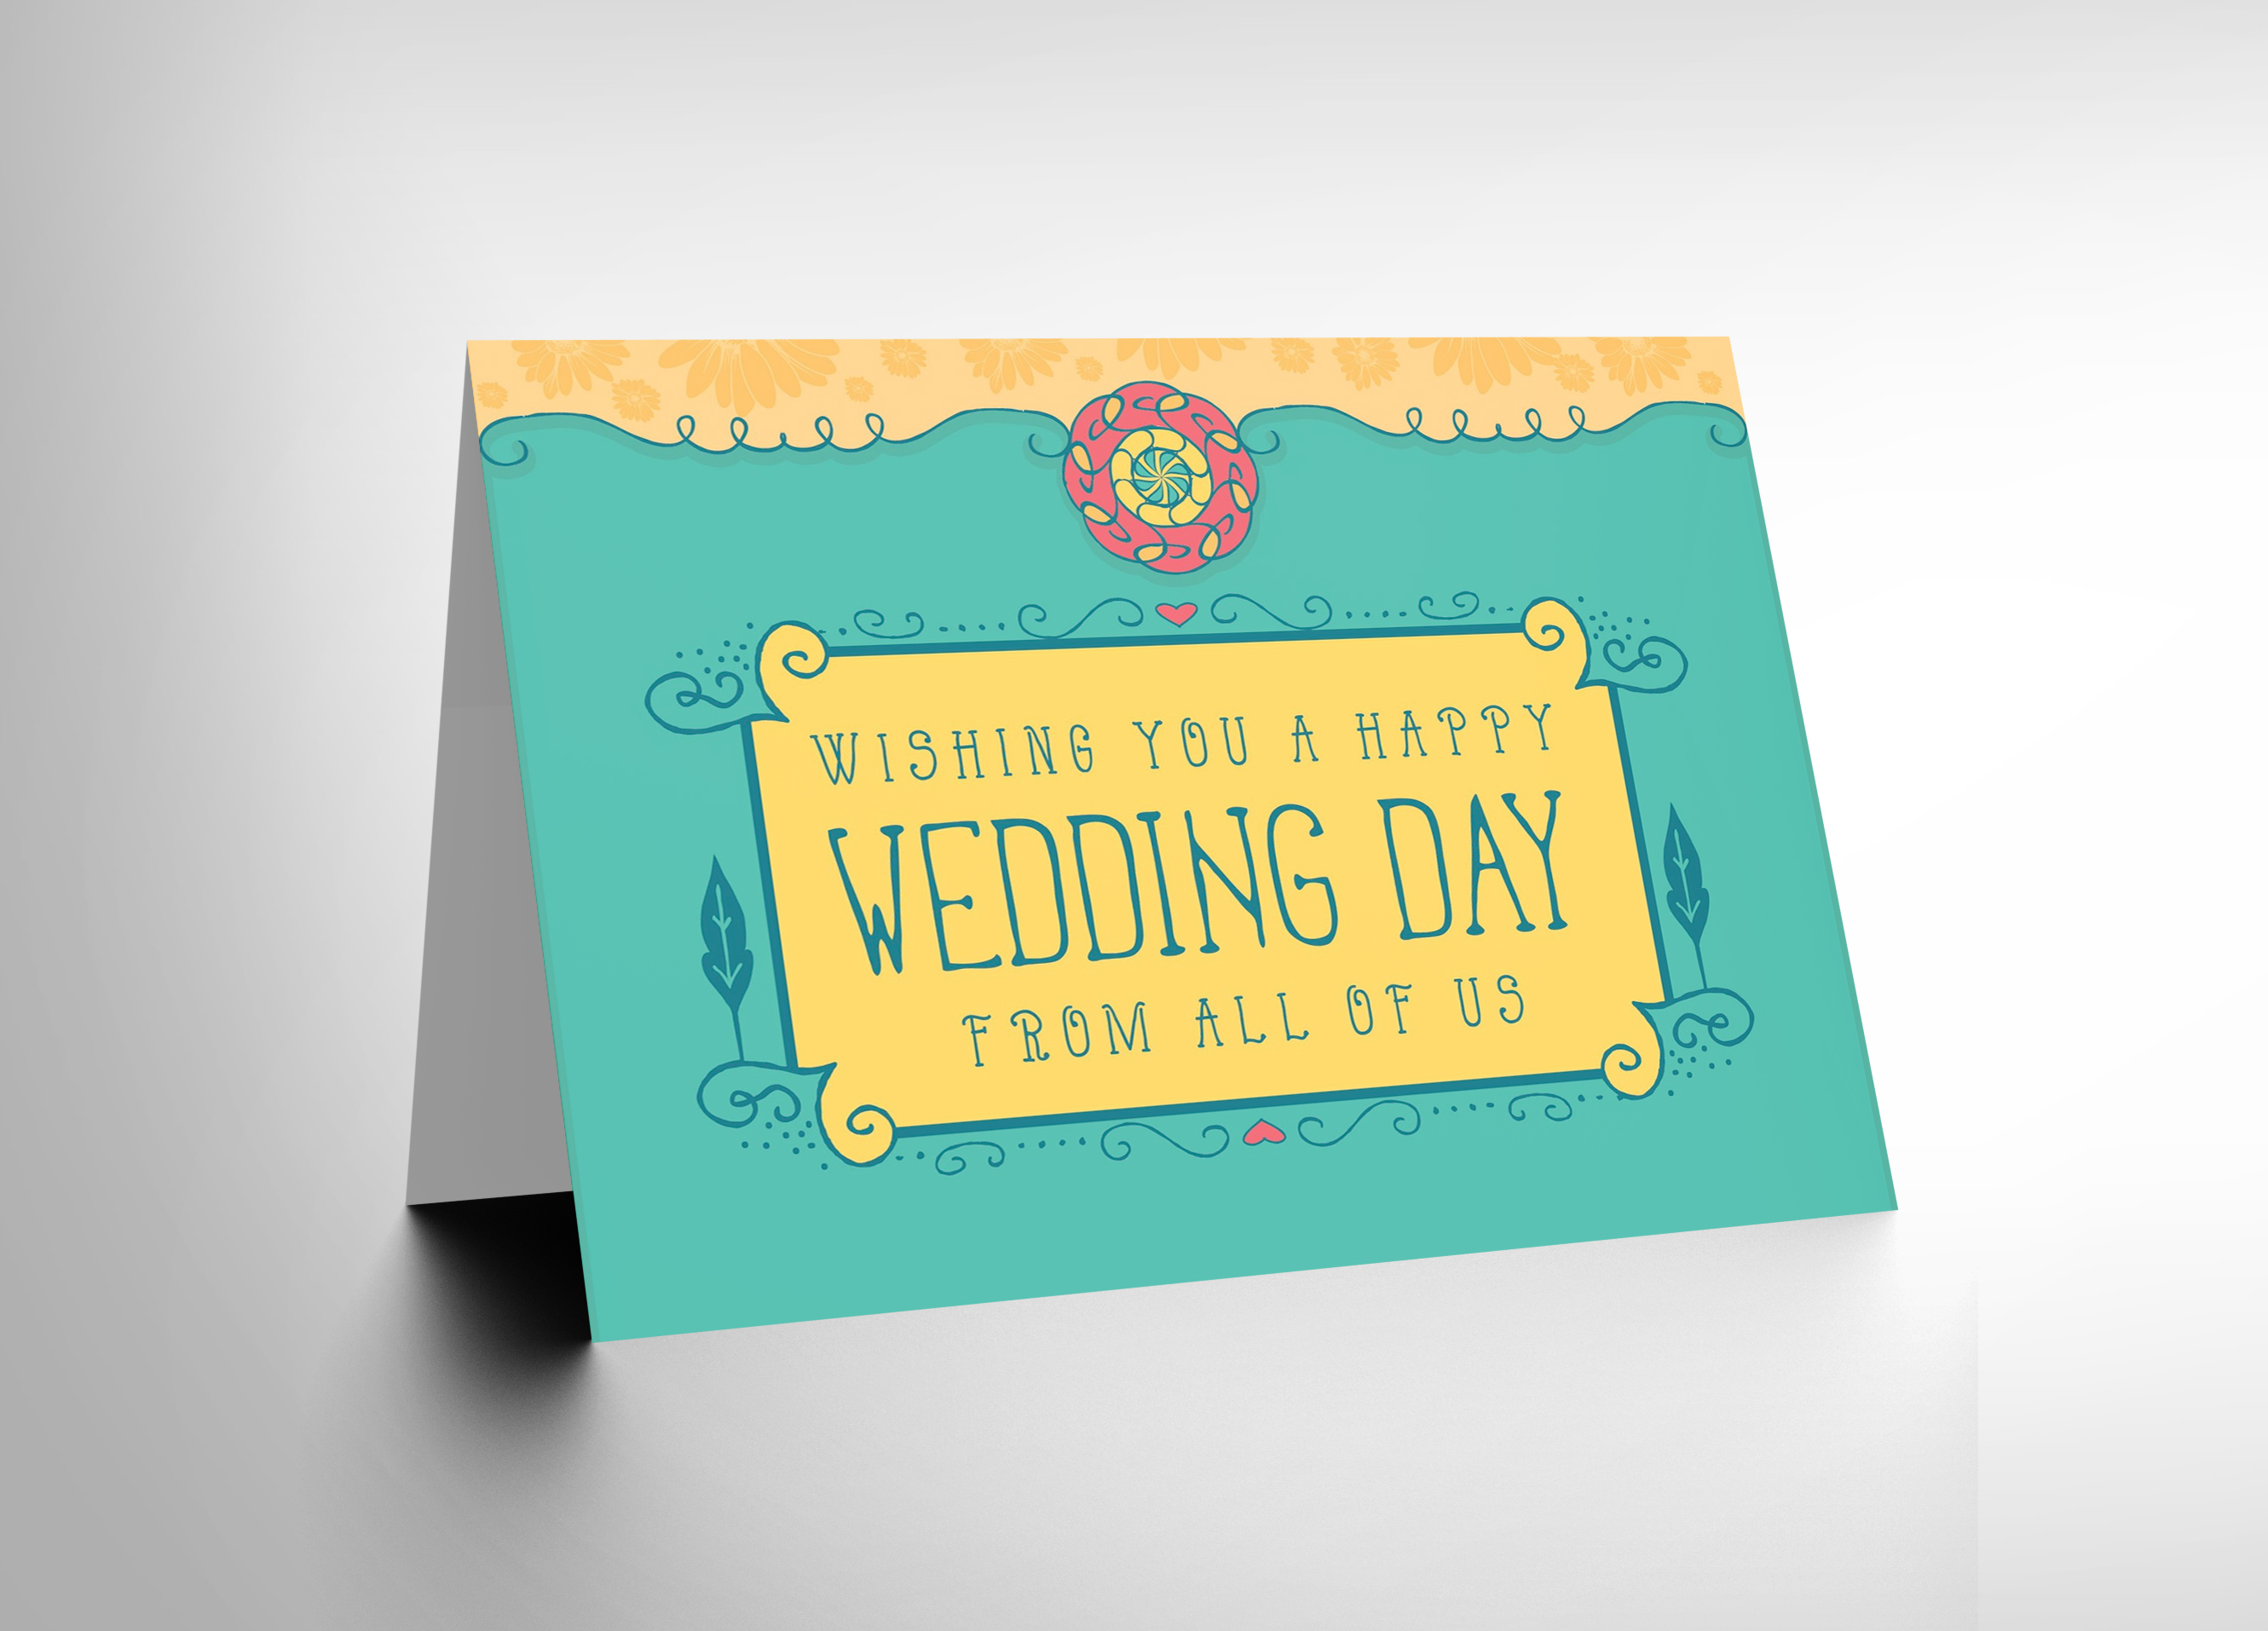 Wedding Gift Card Expressions : ... Garden > Greeting Cards & Party Supply > Greeting Cards & I...